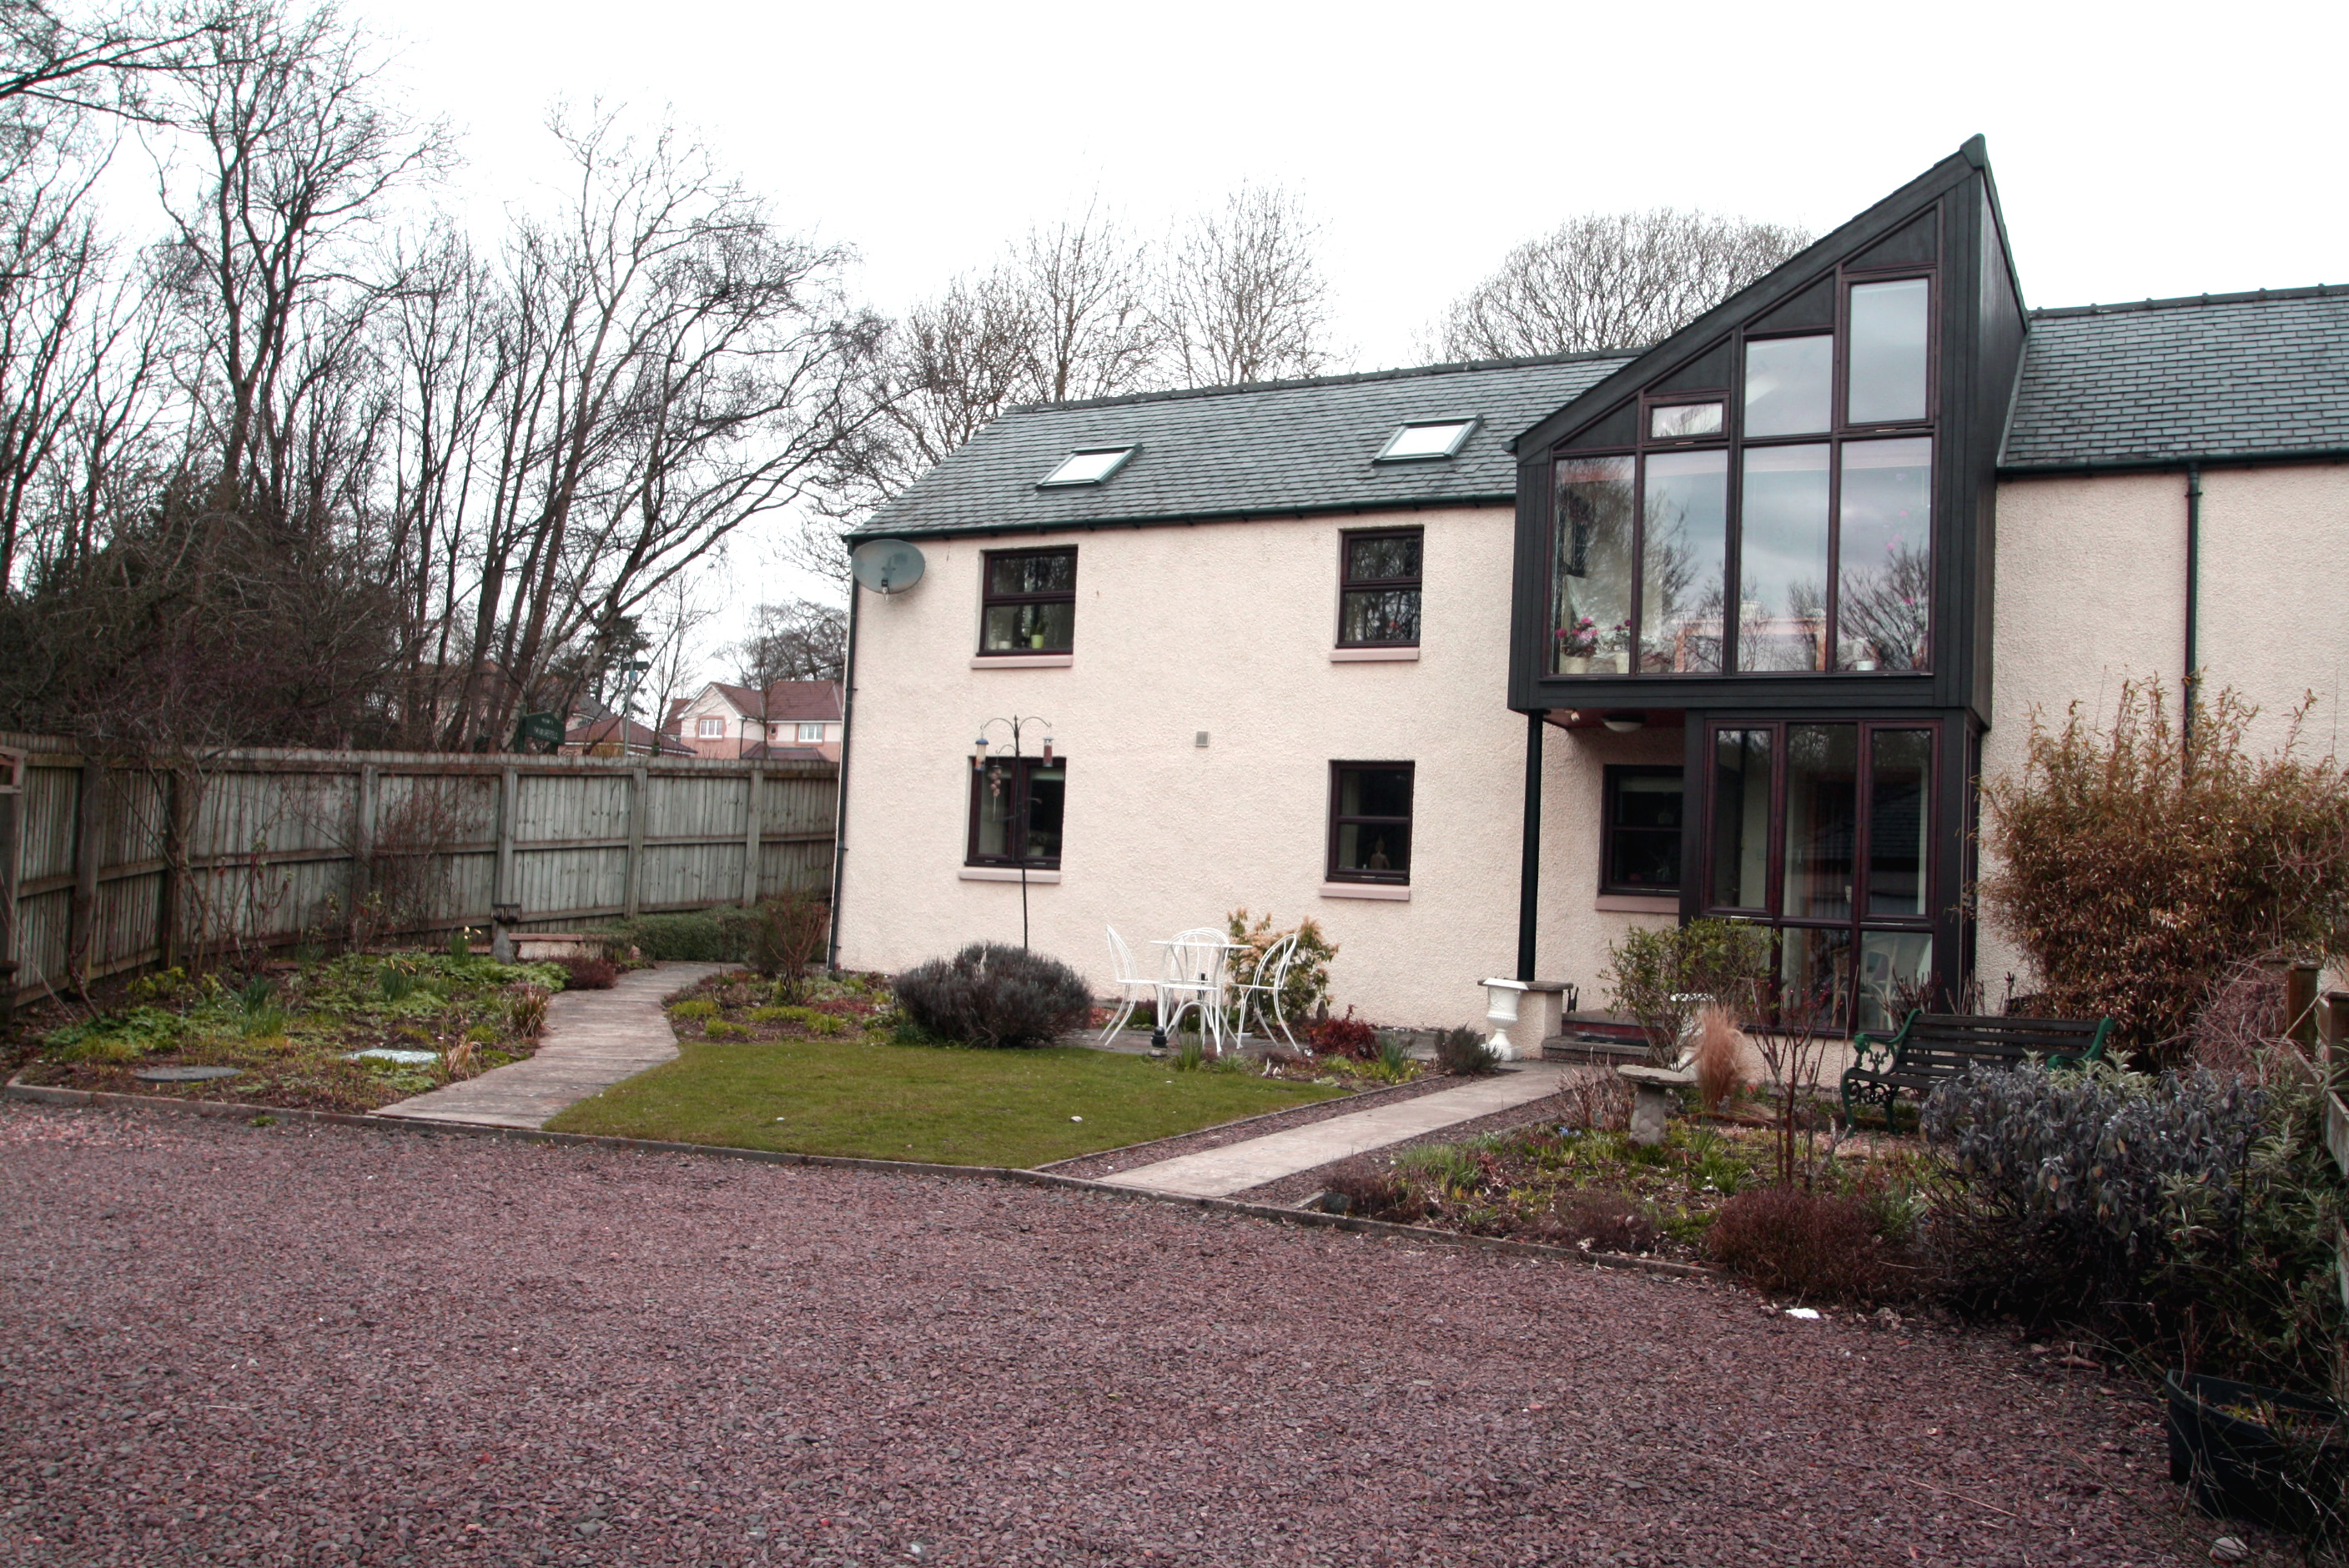 1 The Stables, Panmurefield Den, Broughty Ferry, Dundee, DD5 3RW